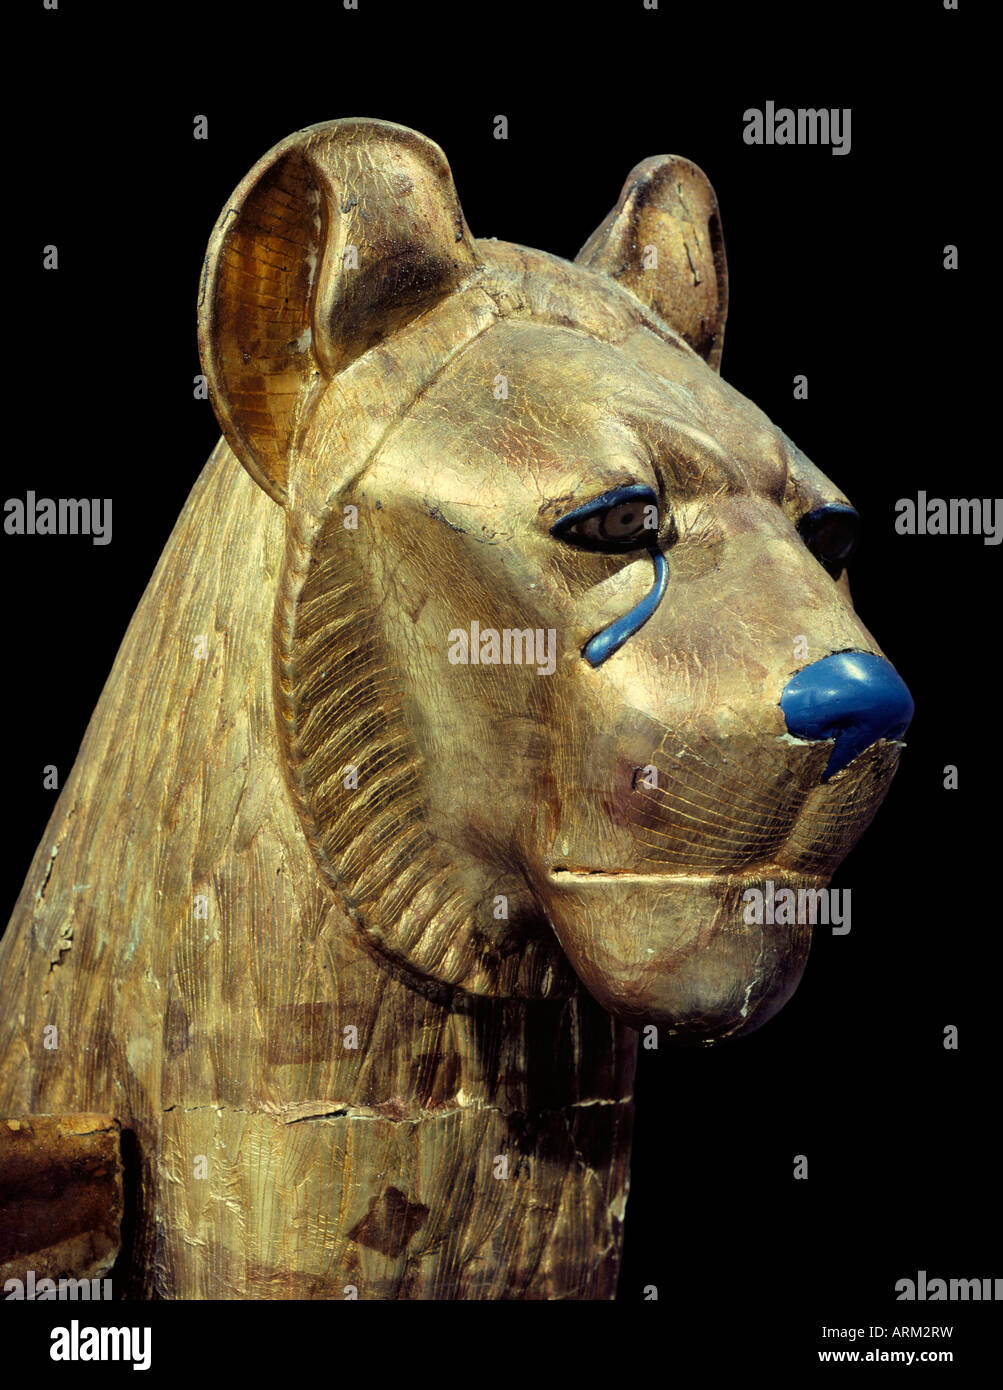 Head of a funerary couch in the form of a cheetah or lion, from the tomb of the pharaoh Tutankhamun - Stock Image